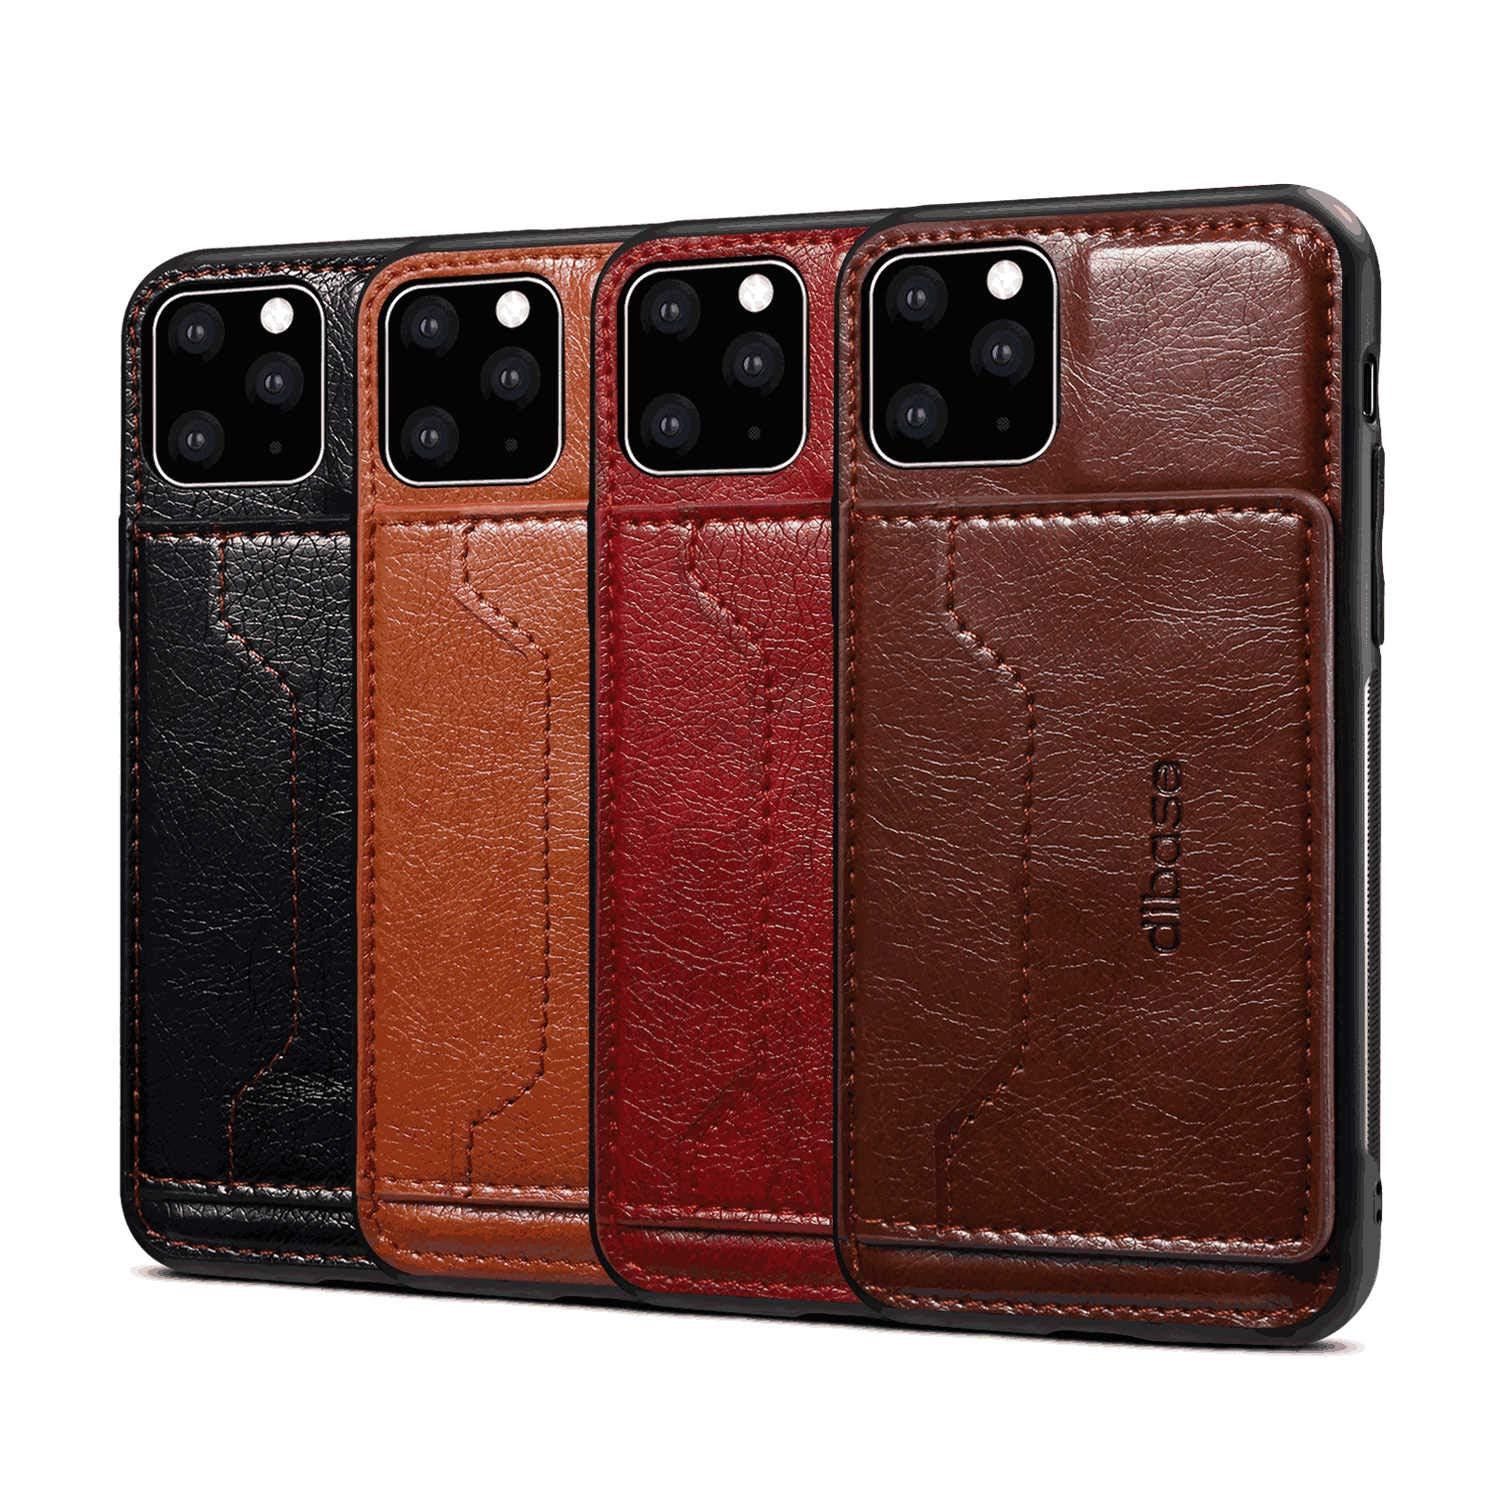 black PU Leather Wallet Flip Case for iPhone 11 Pro Max Positive Cover Compatible with iPhone 11 Pro Max